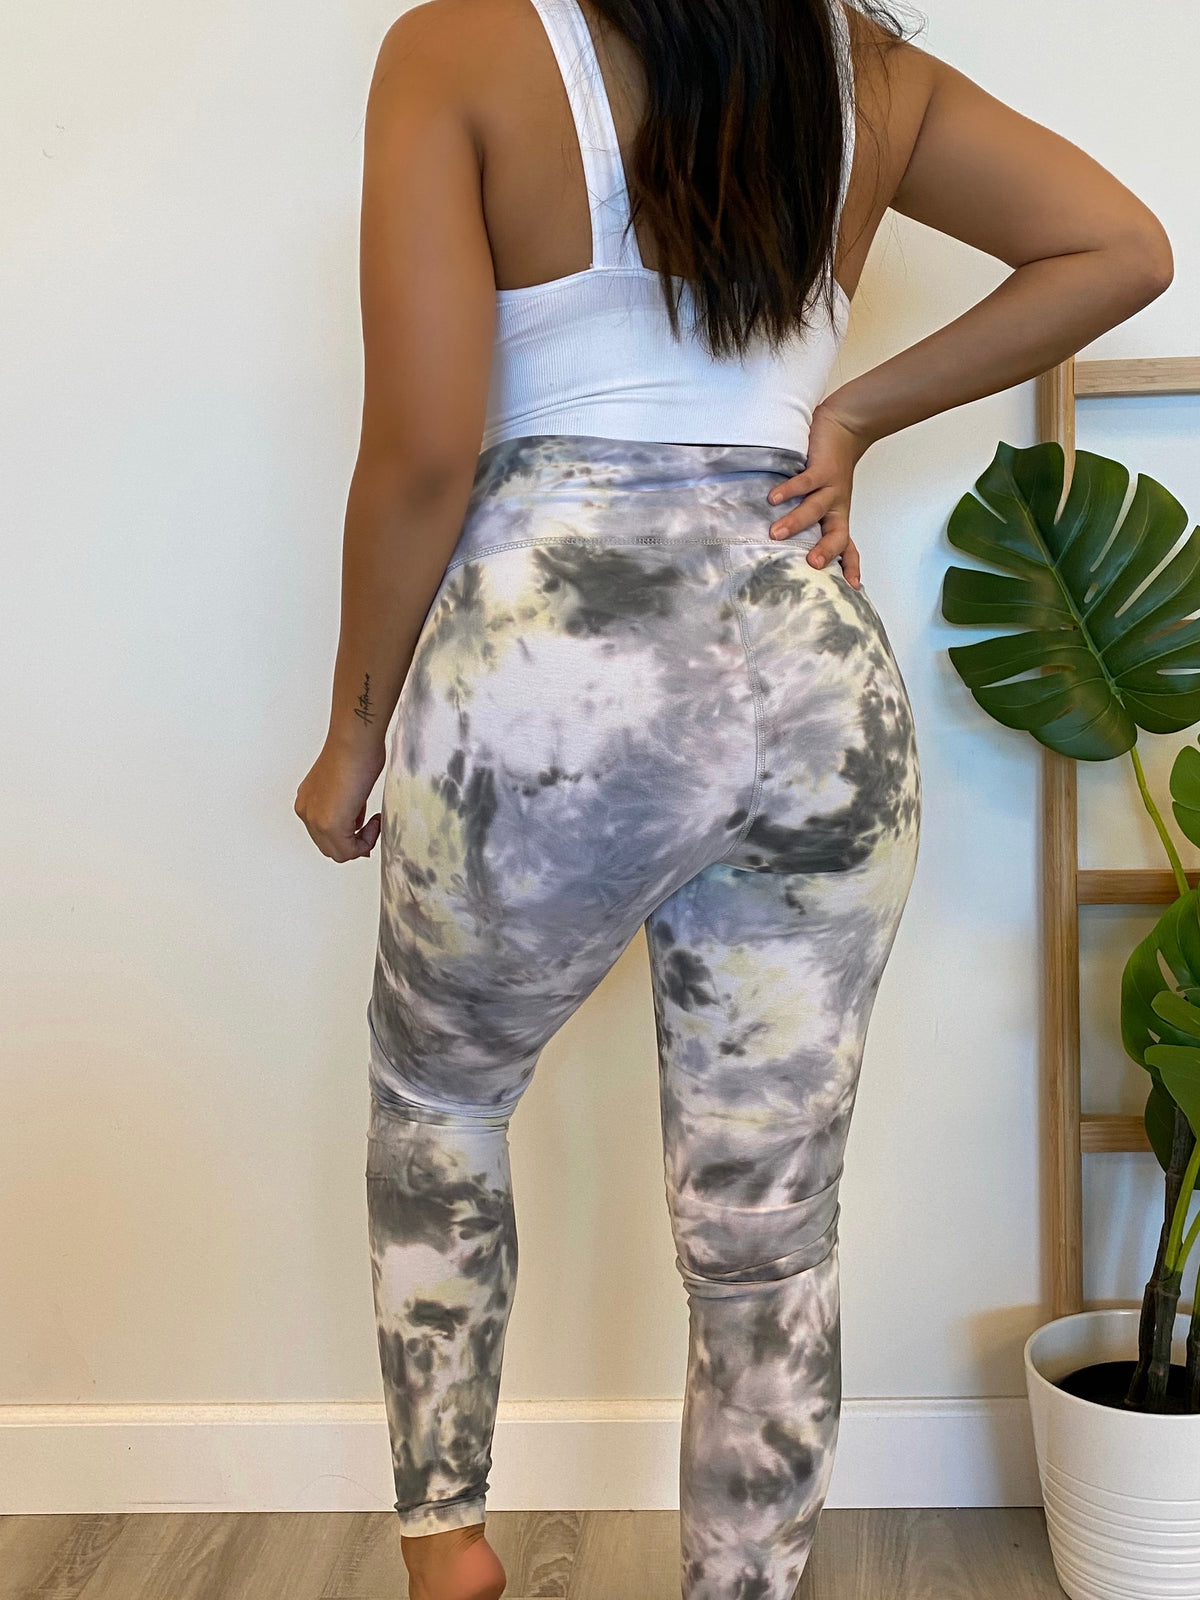 high waist leggings, yellow/ grey, workout leggings